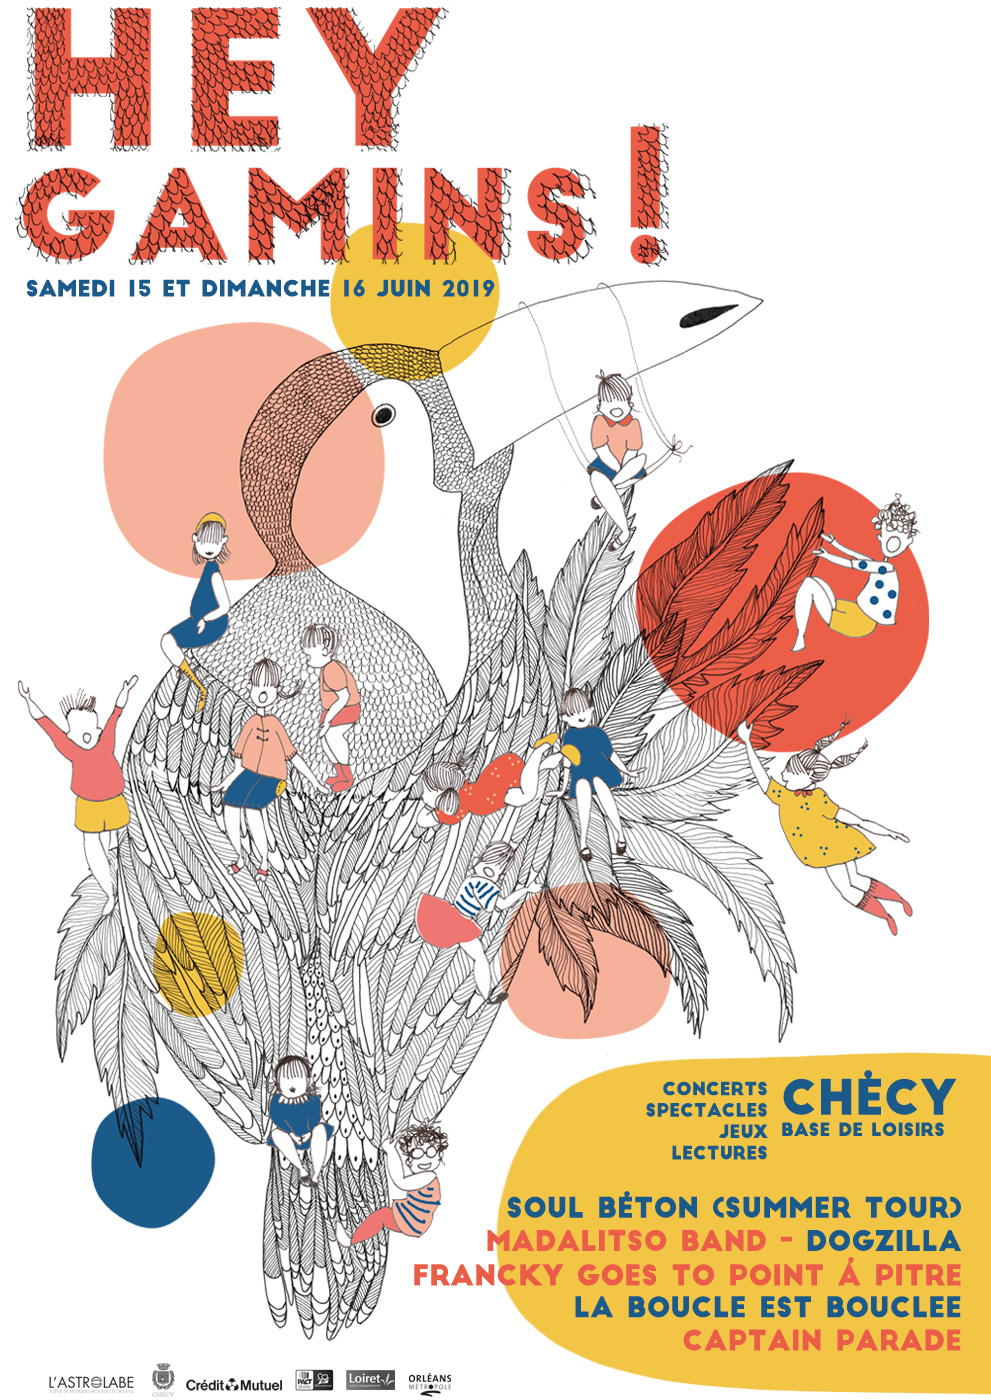 FESTIVAL HEY GAMINS! 2019 - DIMANCHE